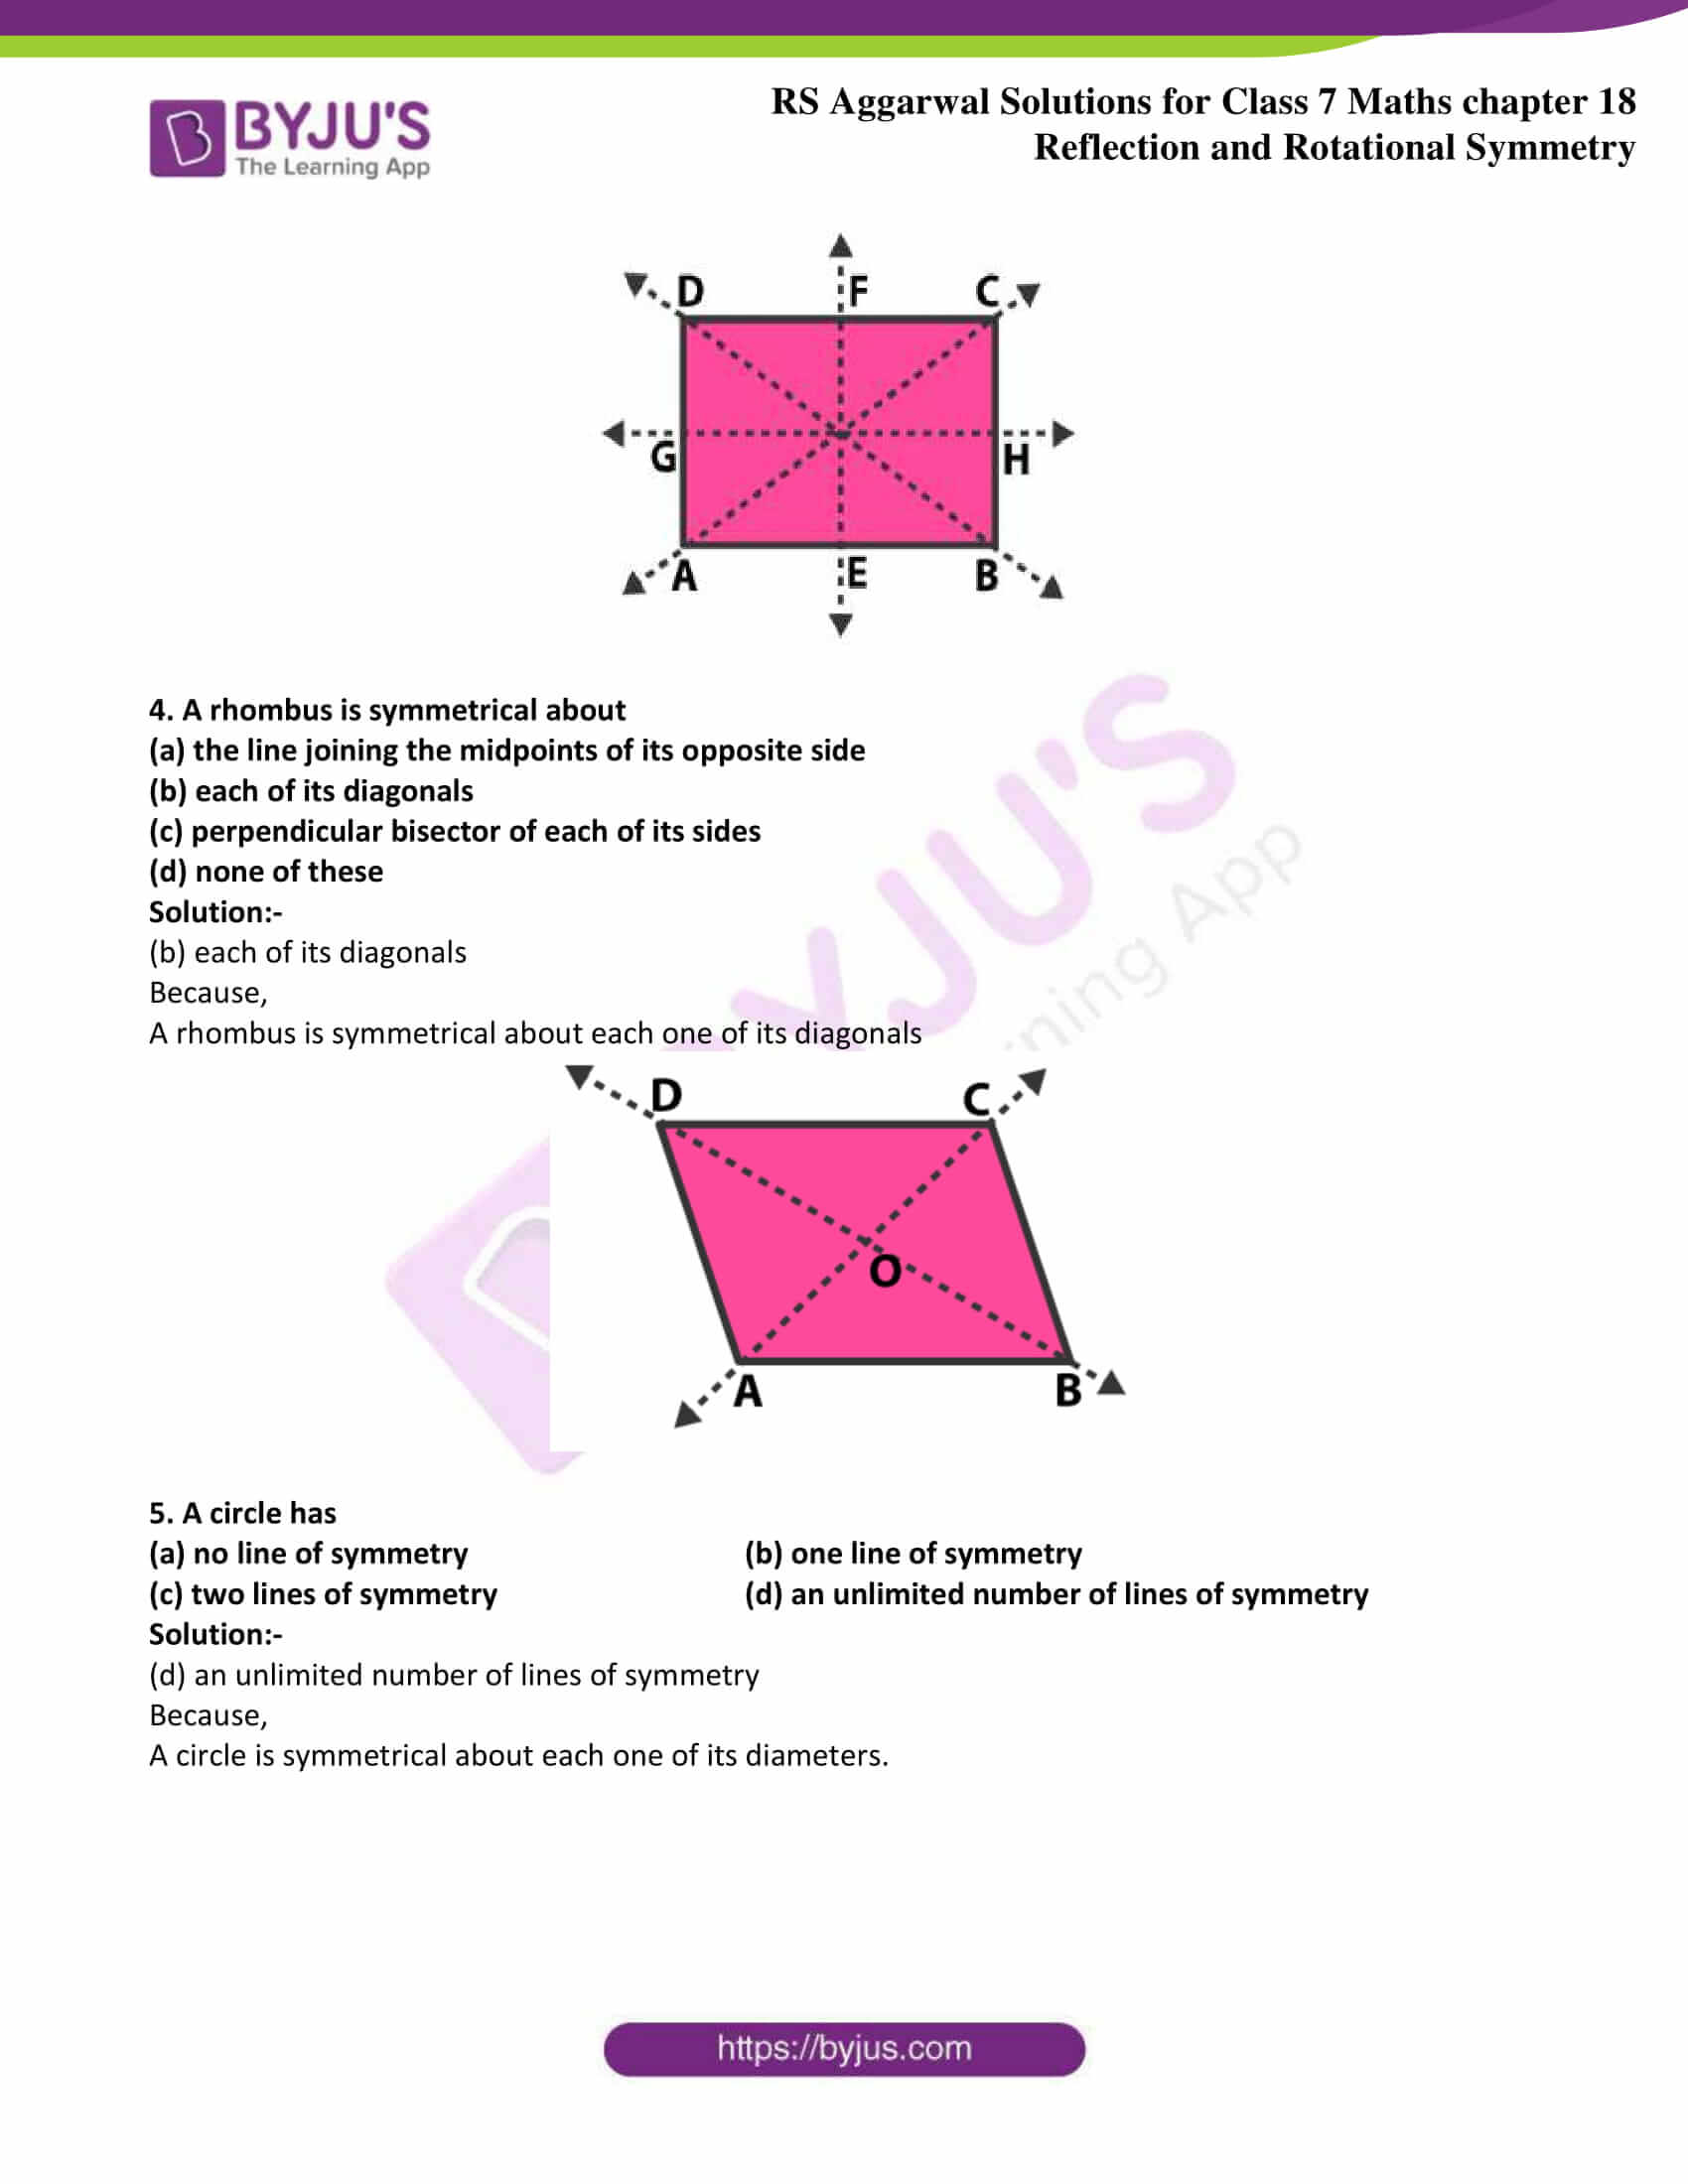 rs aggarwal solution class 7 maths chapter 18